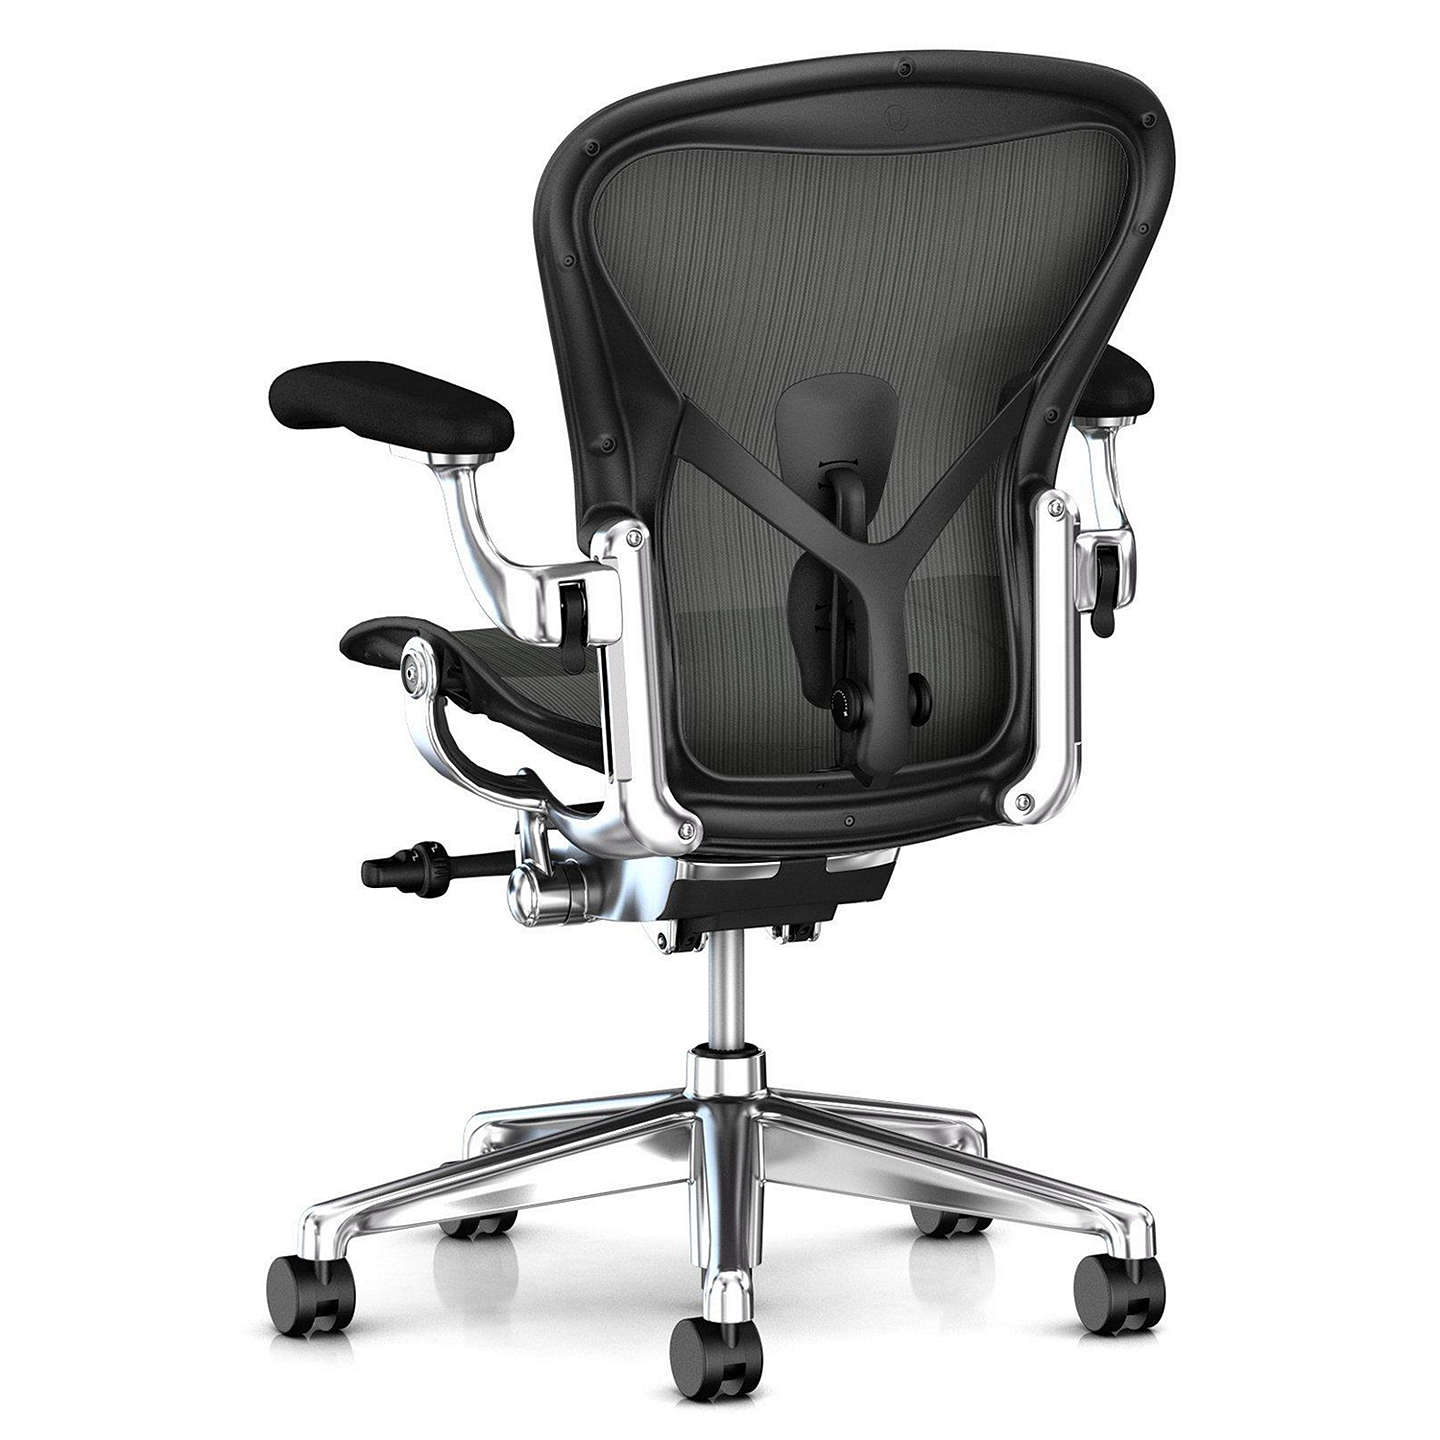 Aeron Aluminum Chairs - 003177259alt1?$rsp-pdp-main-1440$_Good Aeron Aluminum Chairs - 003177259alt1?$rsp-pdp-main-1440$  2018_571366.com/is/image/JohnLewis/003177259alt1?$rsp-pdp-main-1440$